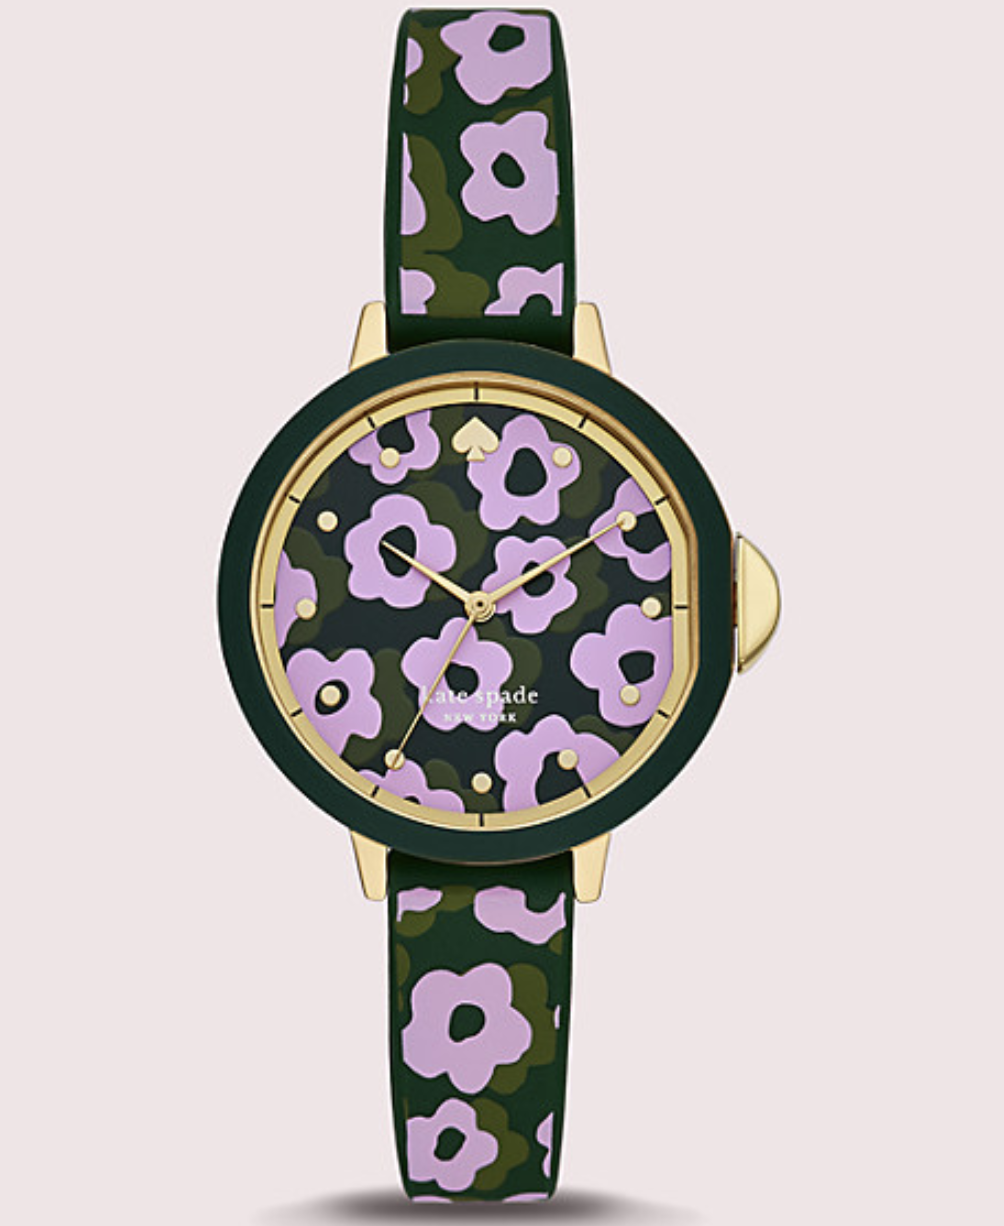 Closeup of watch with green face with purple and green flower pattern and the same color and pattern on the band